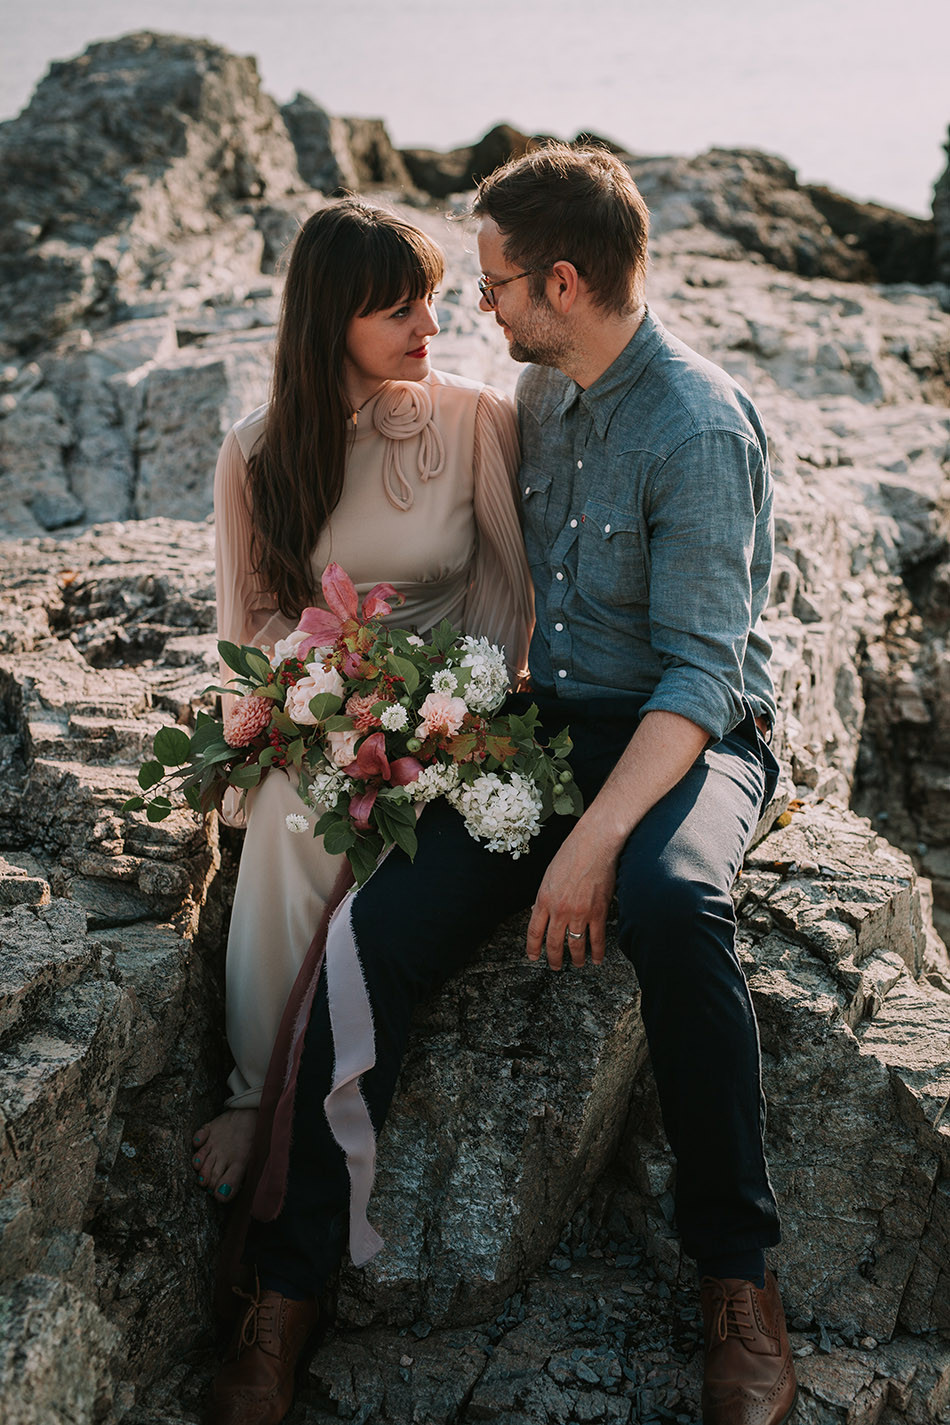 20160803-creative-elopement-with-trille-by-shannon-may-photography-image004